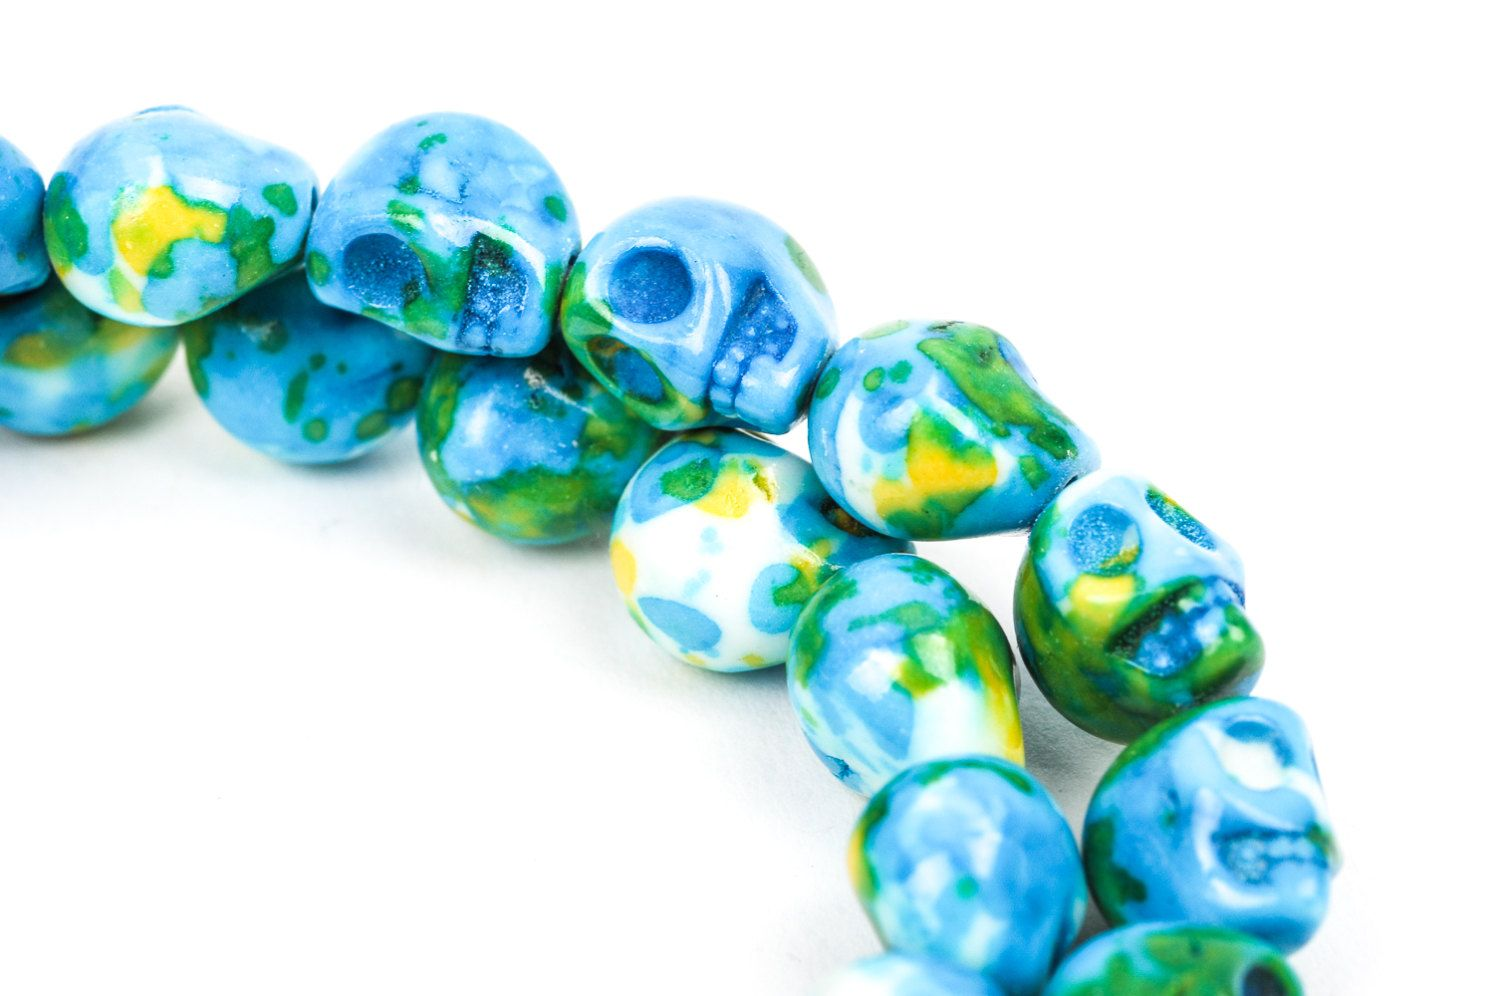 10mm Howlite Skull Beads Marble Blue Green Yellow White Etsy Beaded Skull Turquoise Skulls Jewelry Making Supplies